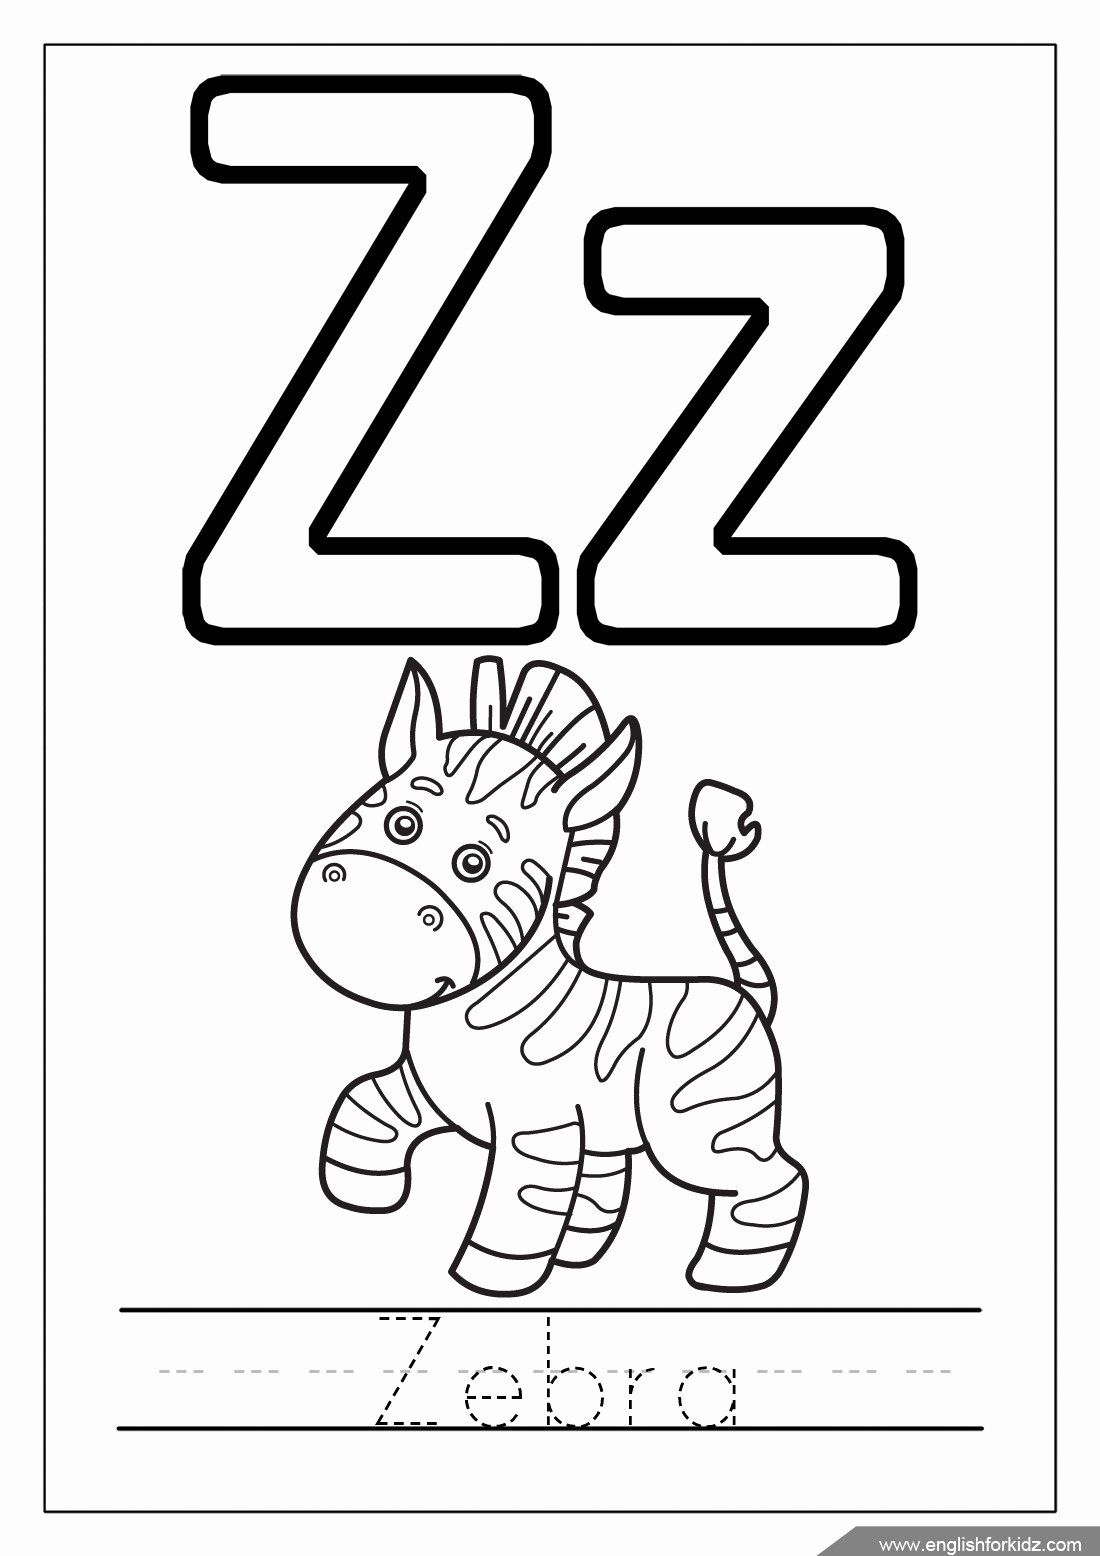 Alphabet Coloring Sheets A Z Pdf Awesome Alphabet Coloring Pages Letters U Z In 2020 Letter A Coloring Pages Coloring Letters Abc Coloring Pages